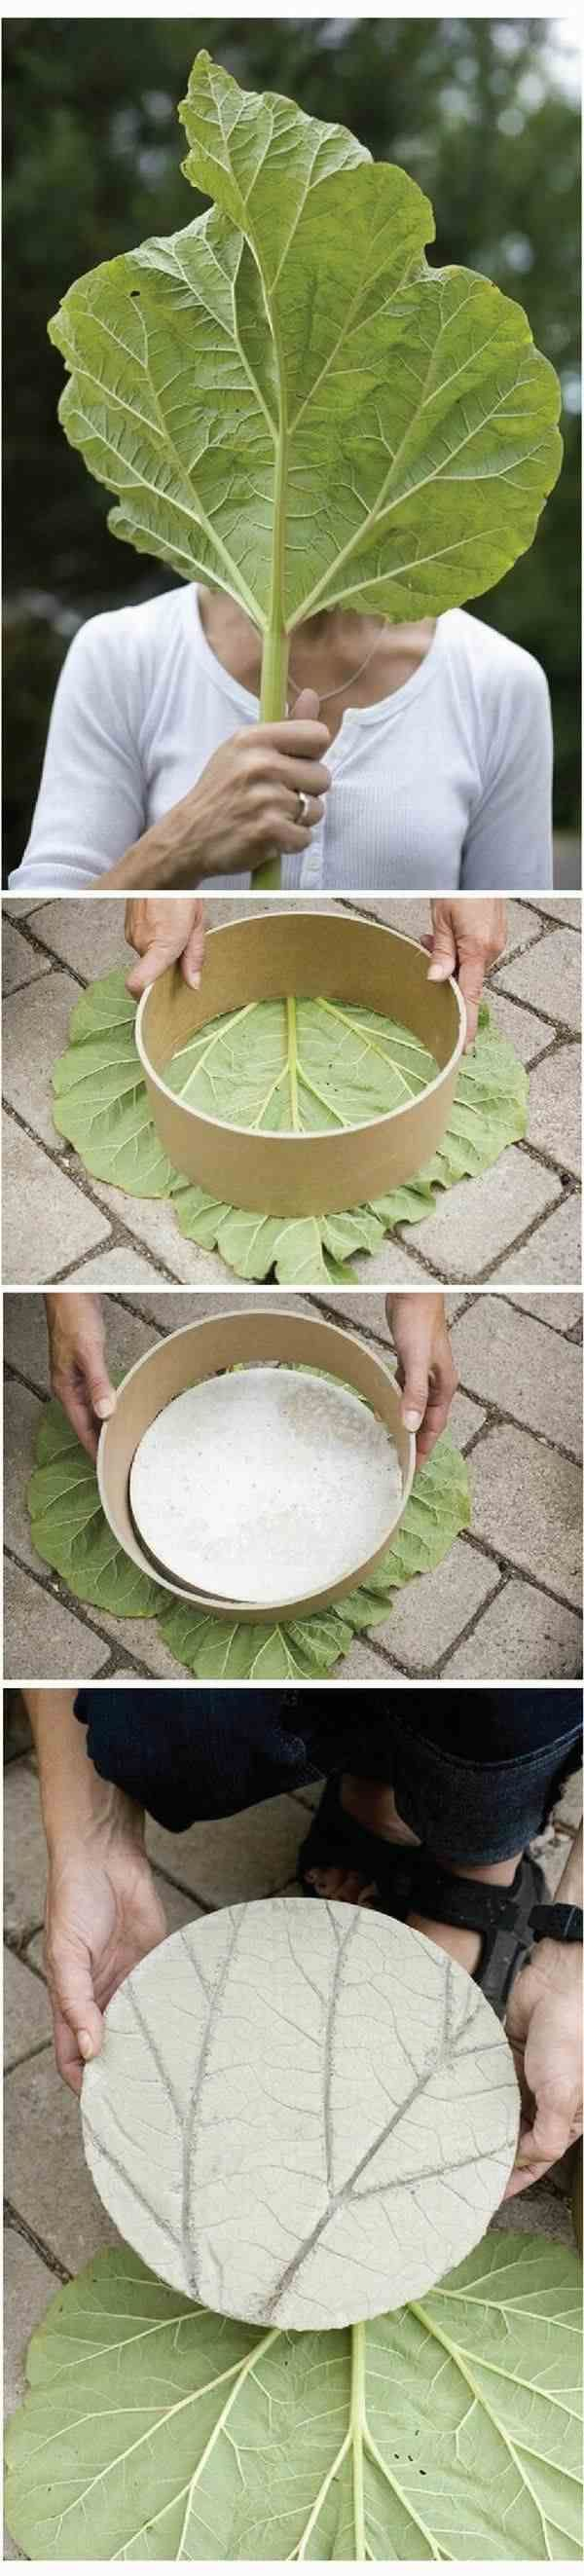 DIY ideas tutorials stepping stones leaf concrete